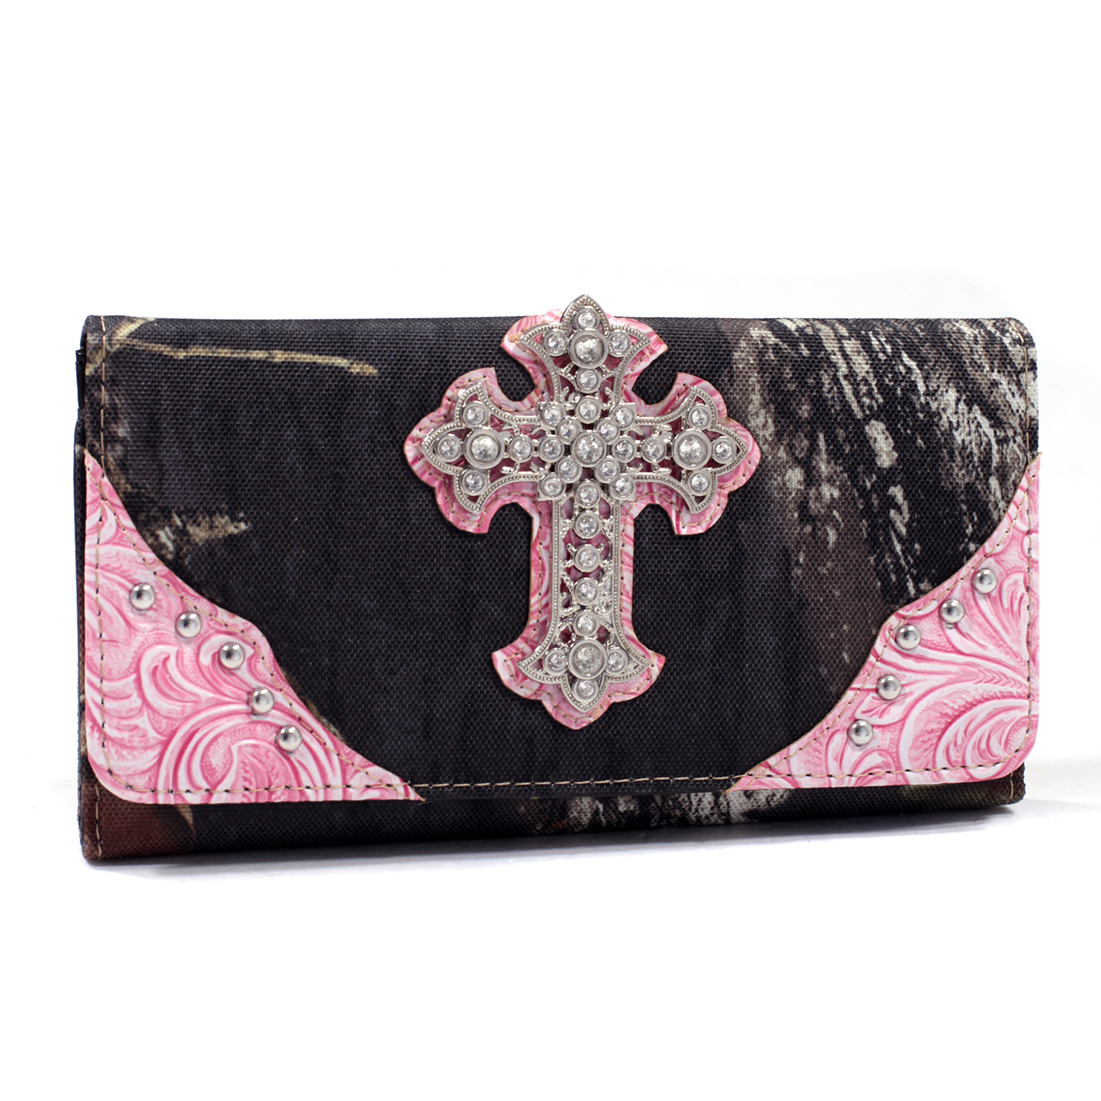 Mossy Oak® Camouflage Tri-fold Wallet With Rhinestone Cross & Floral Trim